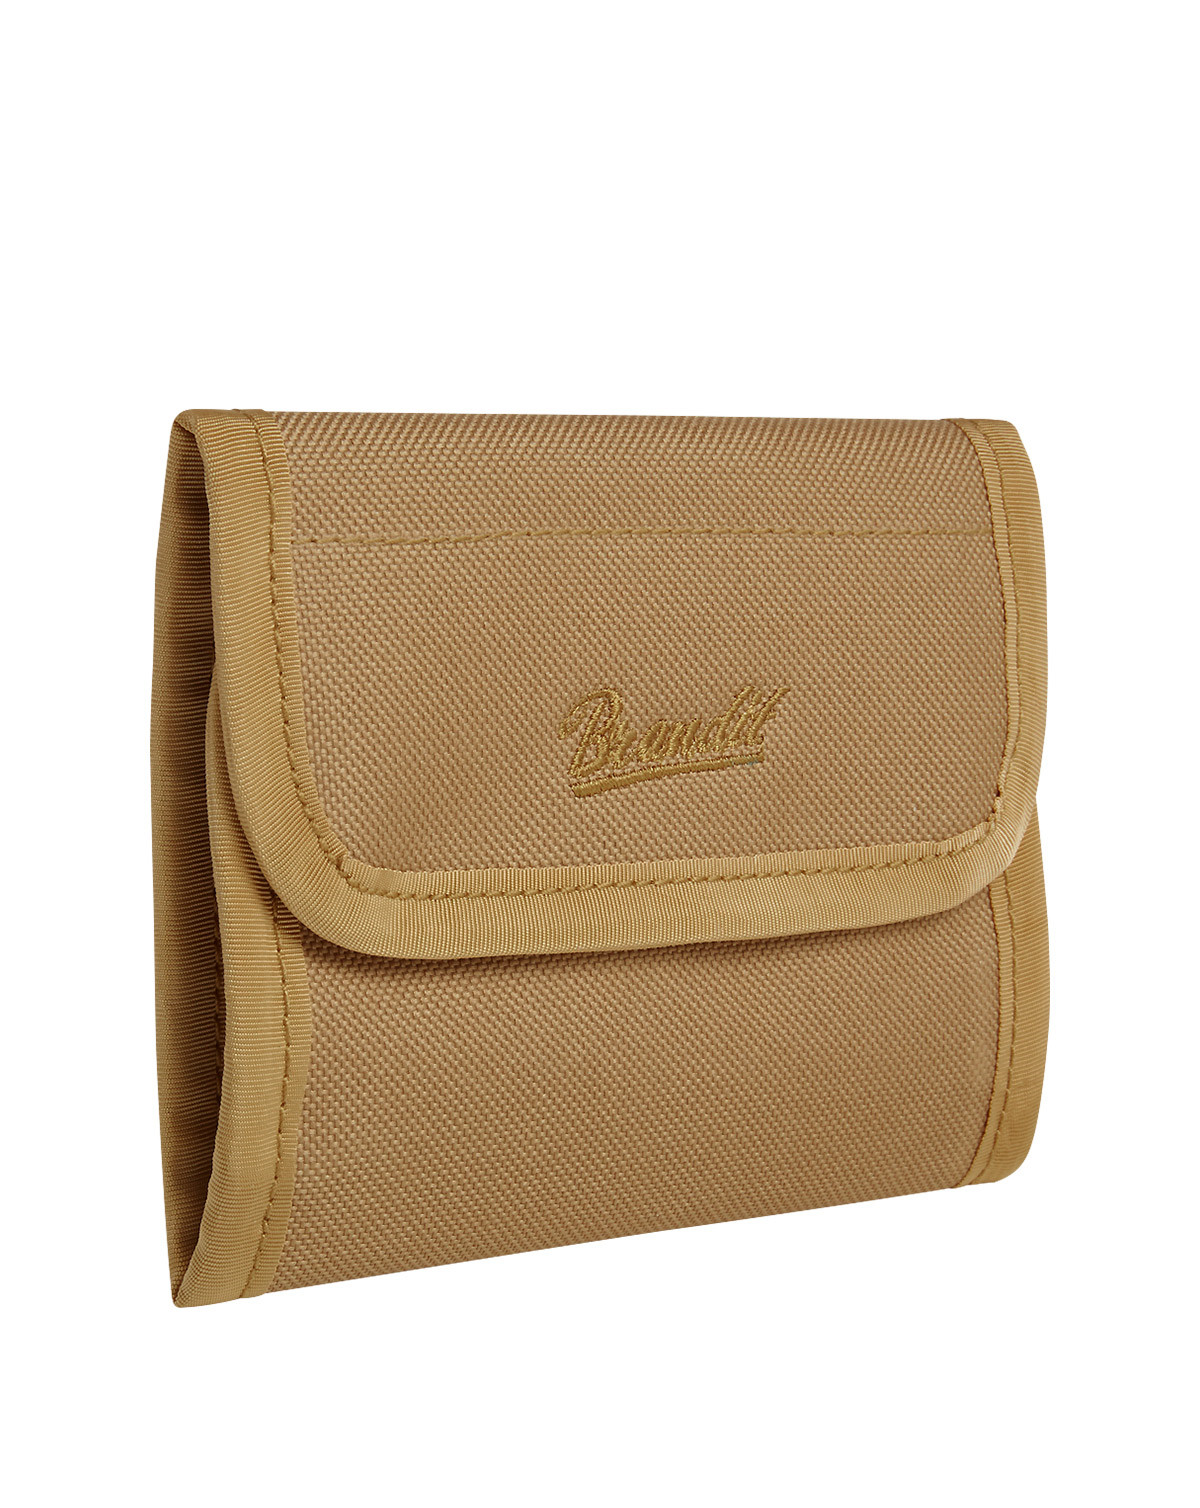 Image of   Brandit Wallet Five (Camel, One Size)